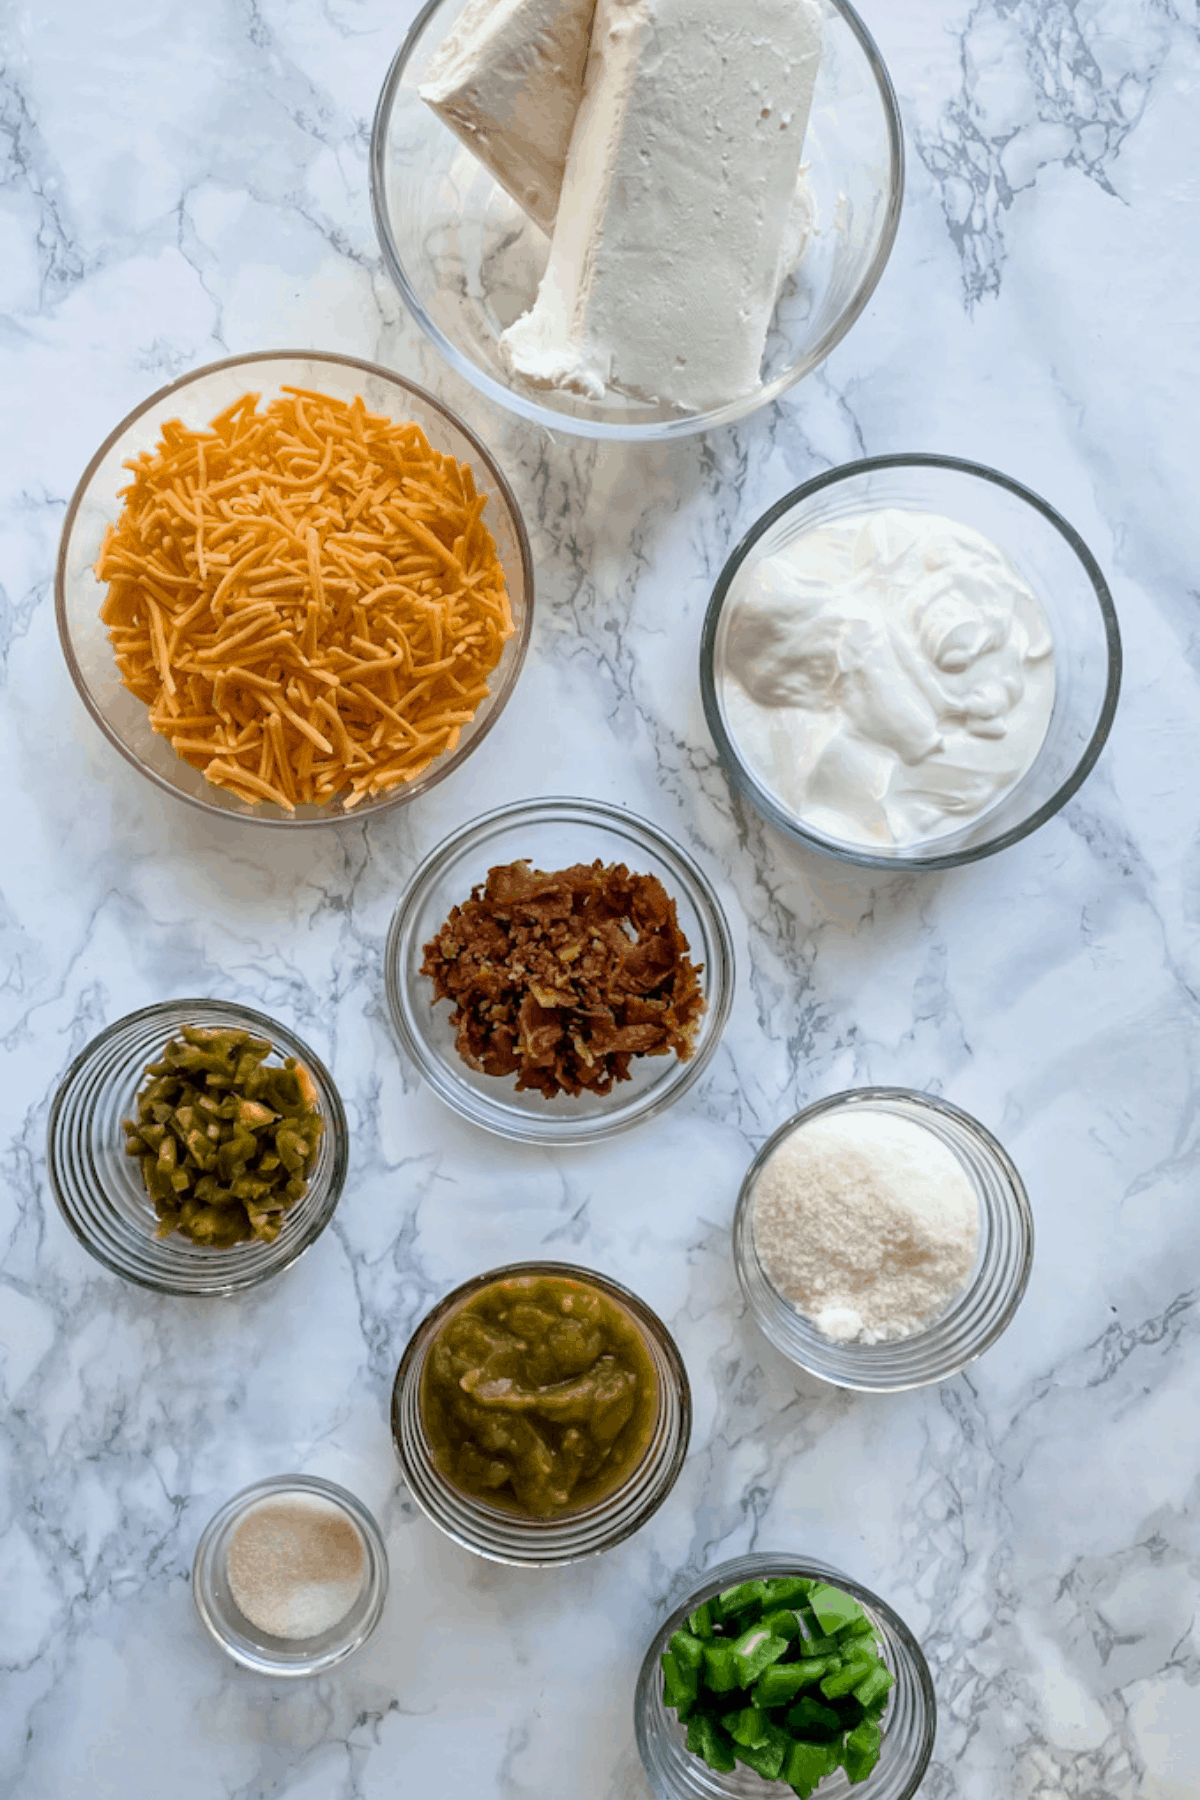 All of the ingredients needed to make jalapeno popper dip.